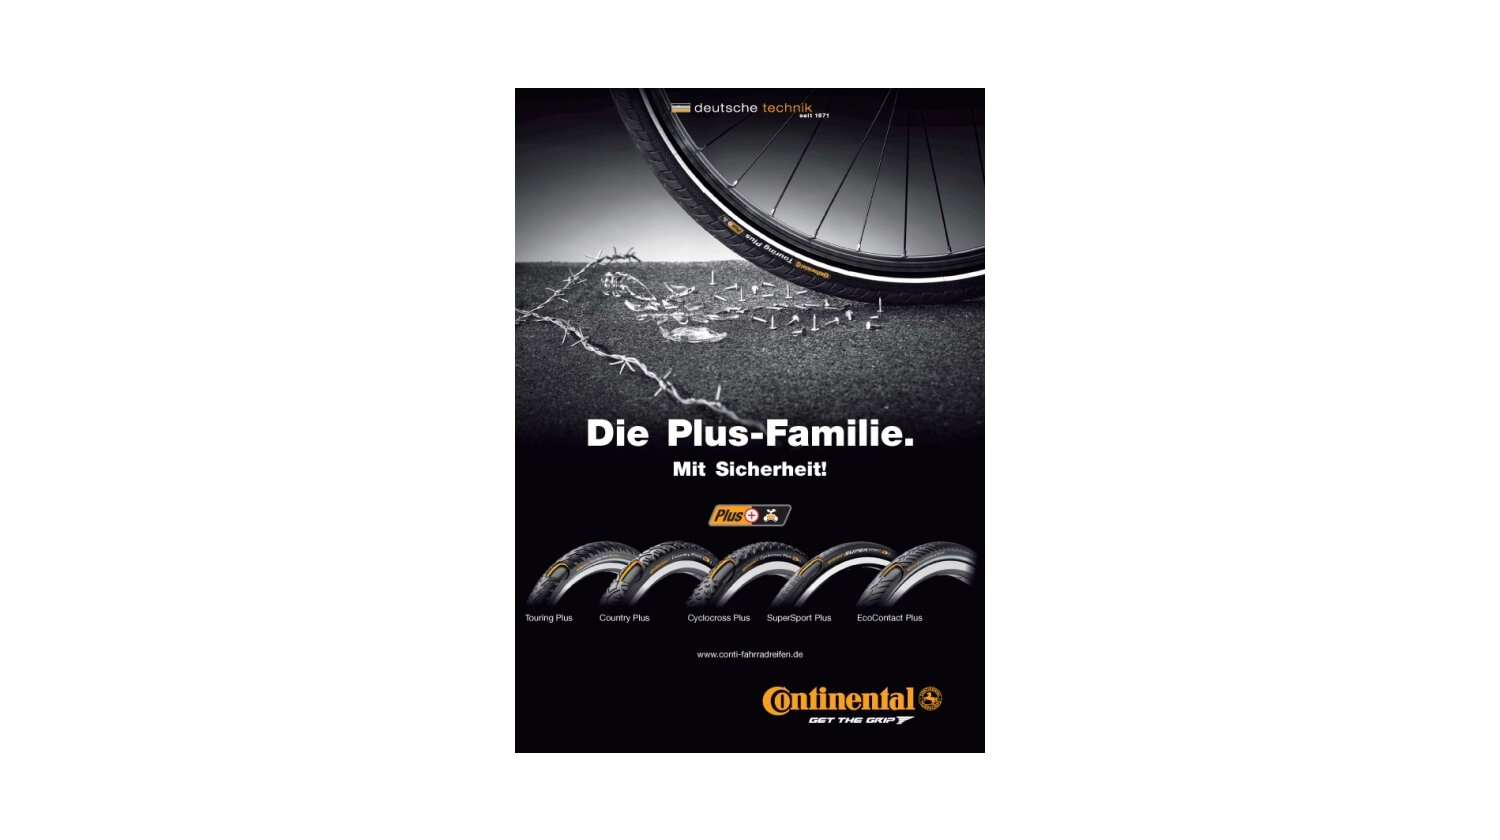 Continental SuperSport Plus 28 Drahtreifen 23-622